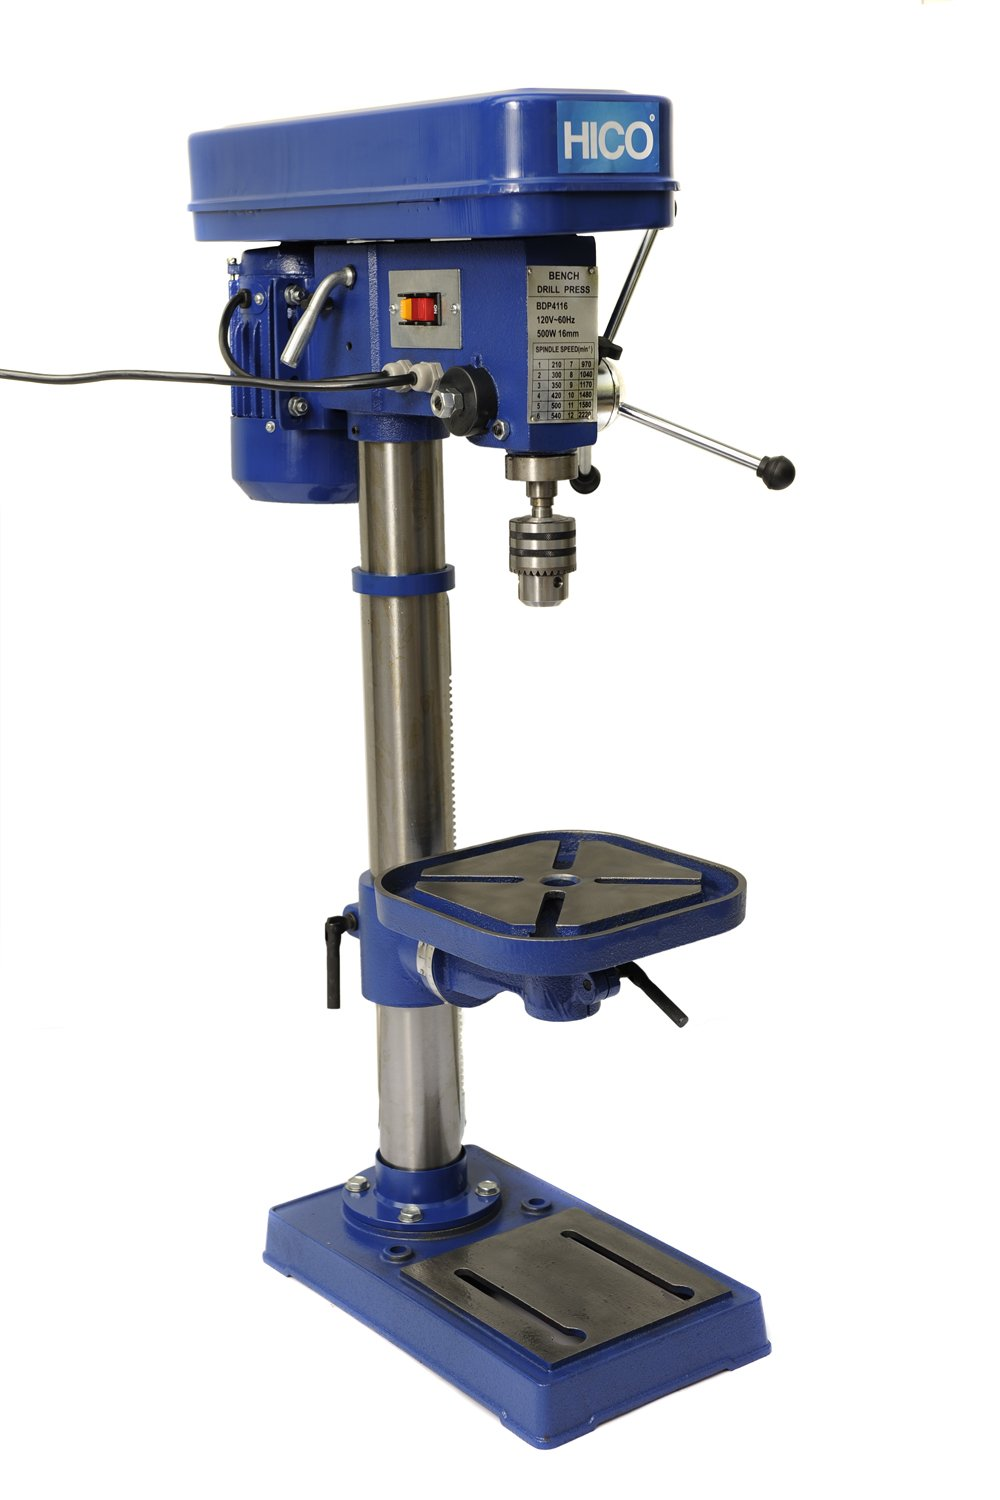 HICO 13-Inch Drill Press Height Adjustable, 12 Speed Motor, Cast Iron Table